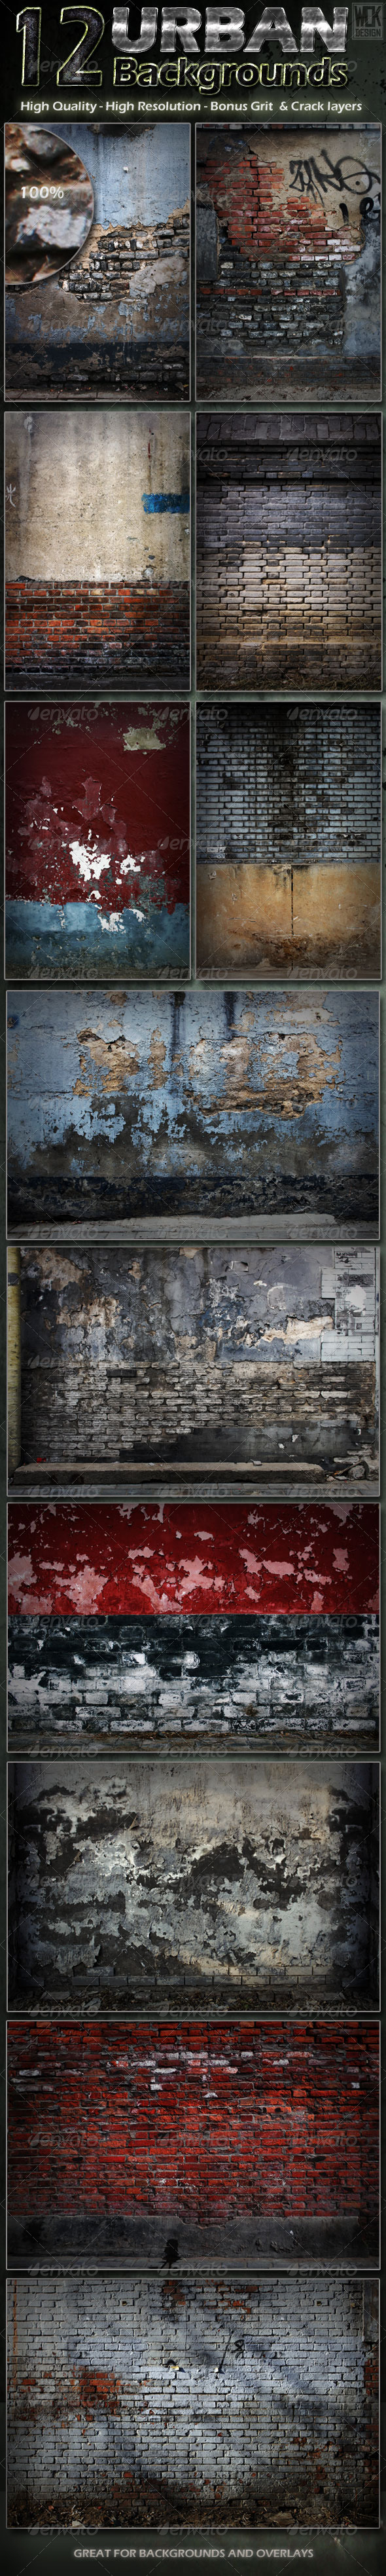 12 Distressed Urban Backgrounds - Urban Backgrounds